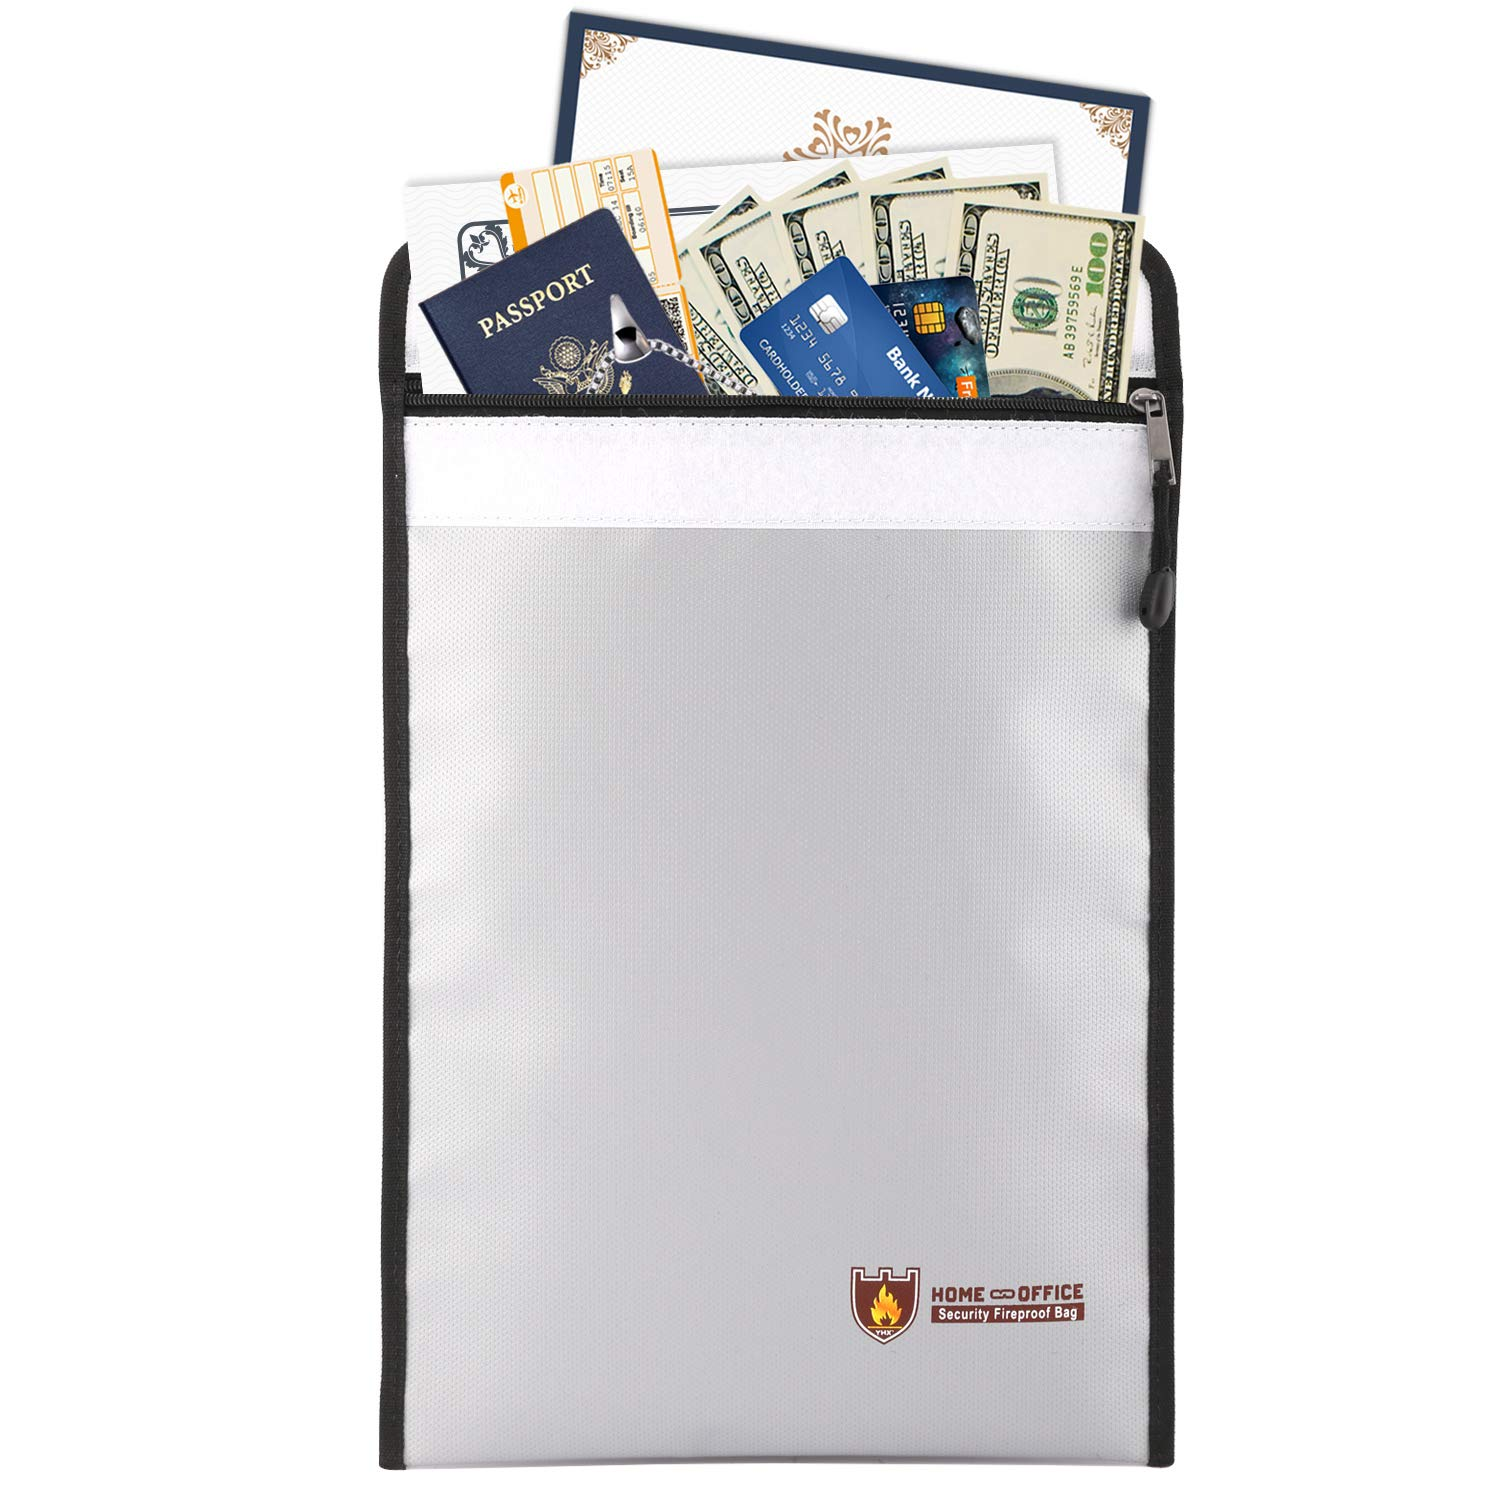 Fireproof Money & Document Bag, MoKo Fire & Water Resistant Large Cash & Envelope Holder with Handle, Protect Your Valuables, Documents, Money, Jewelry, Zipper Closure for Maximum Protection, Black FBD-003